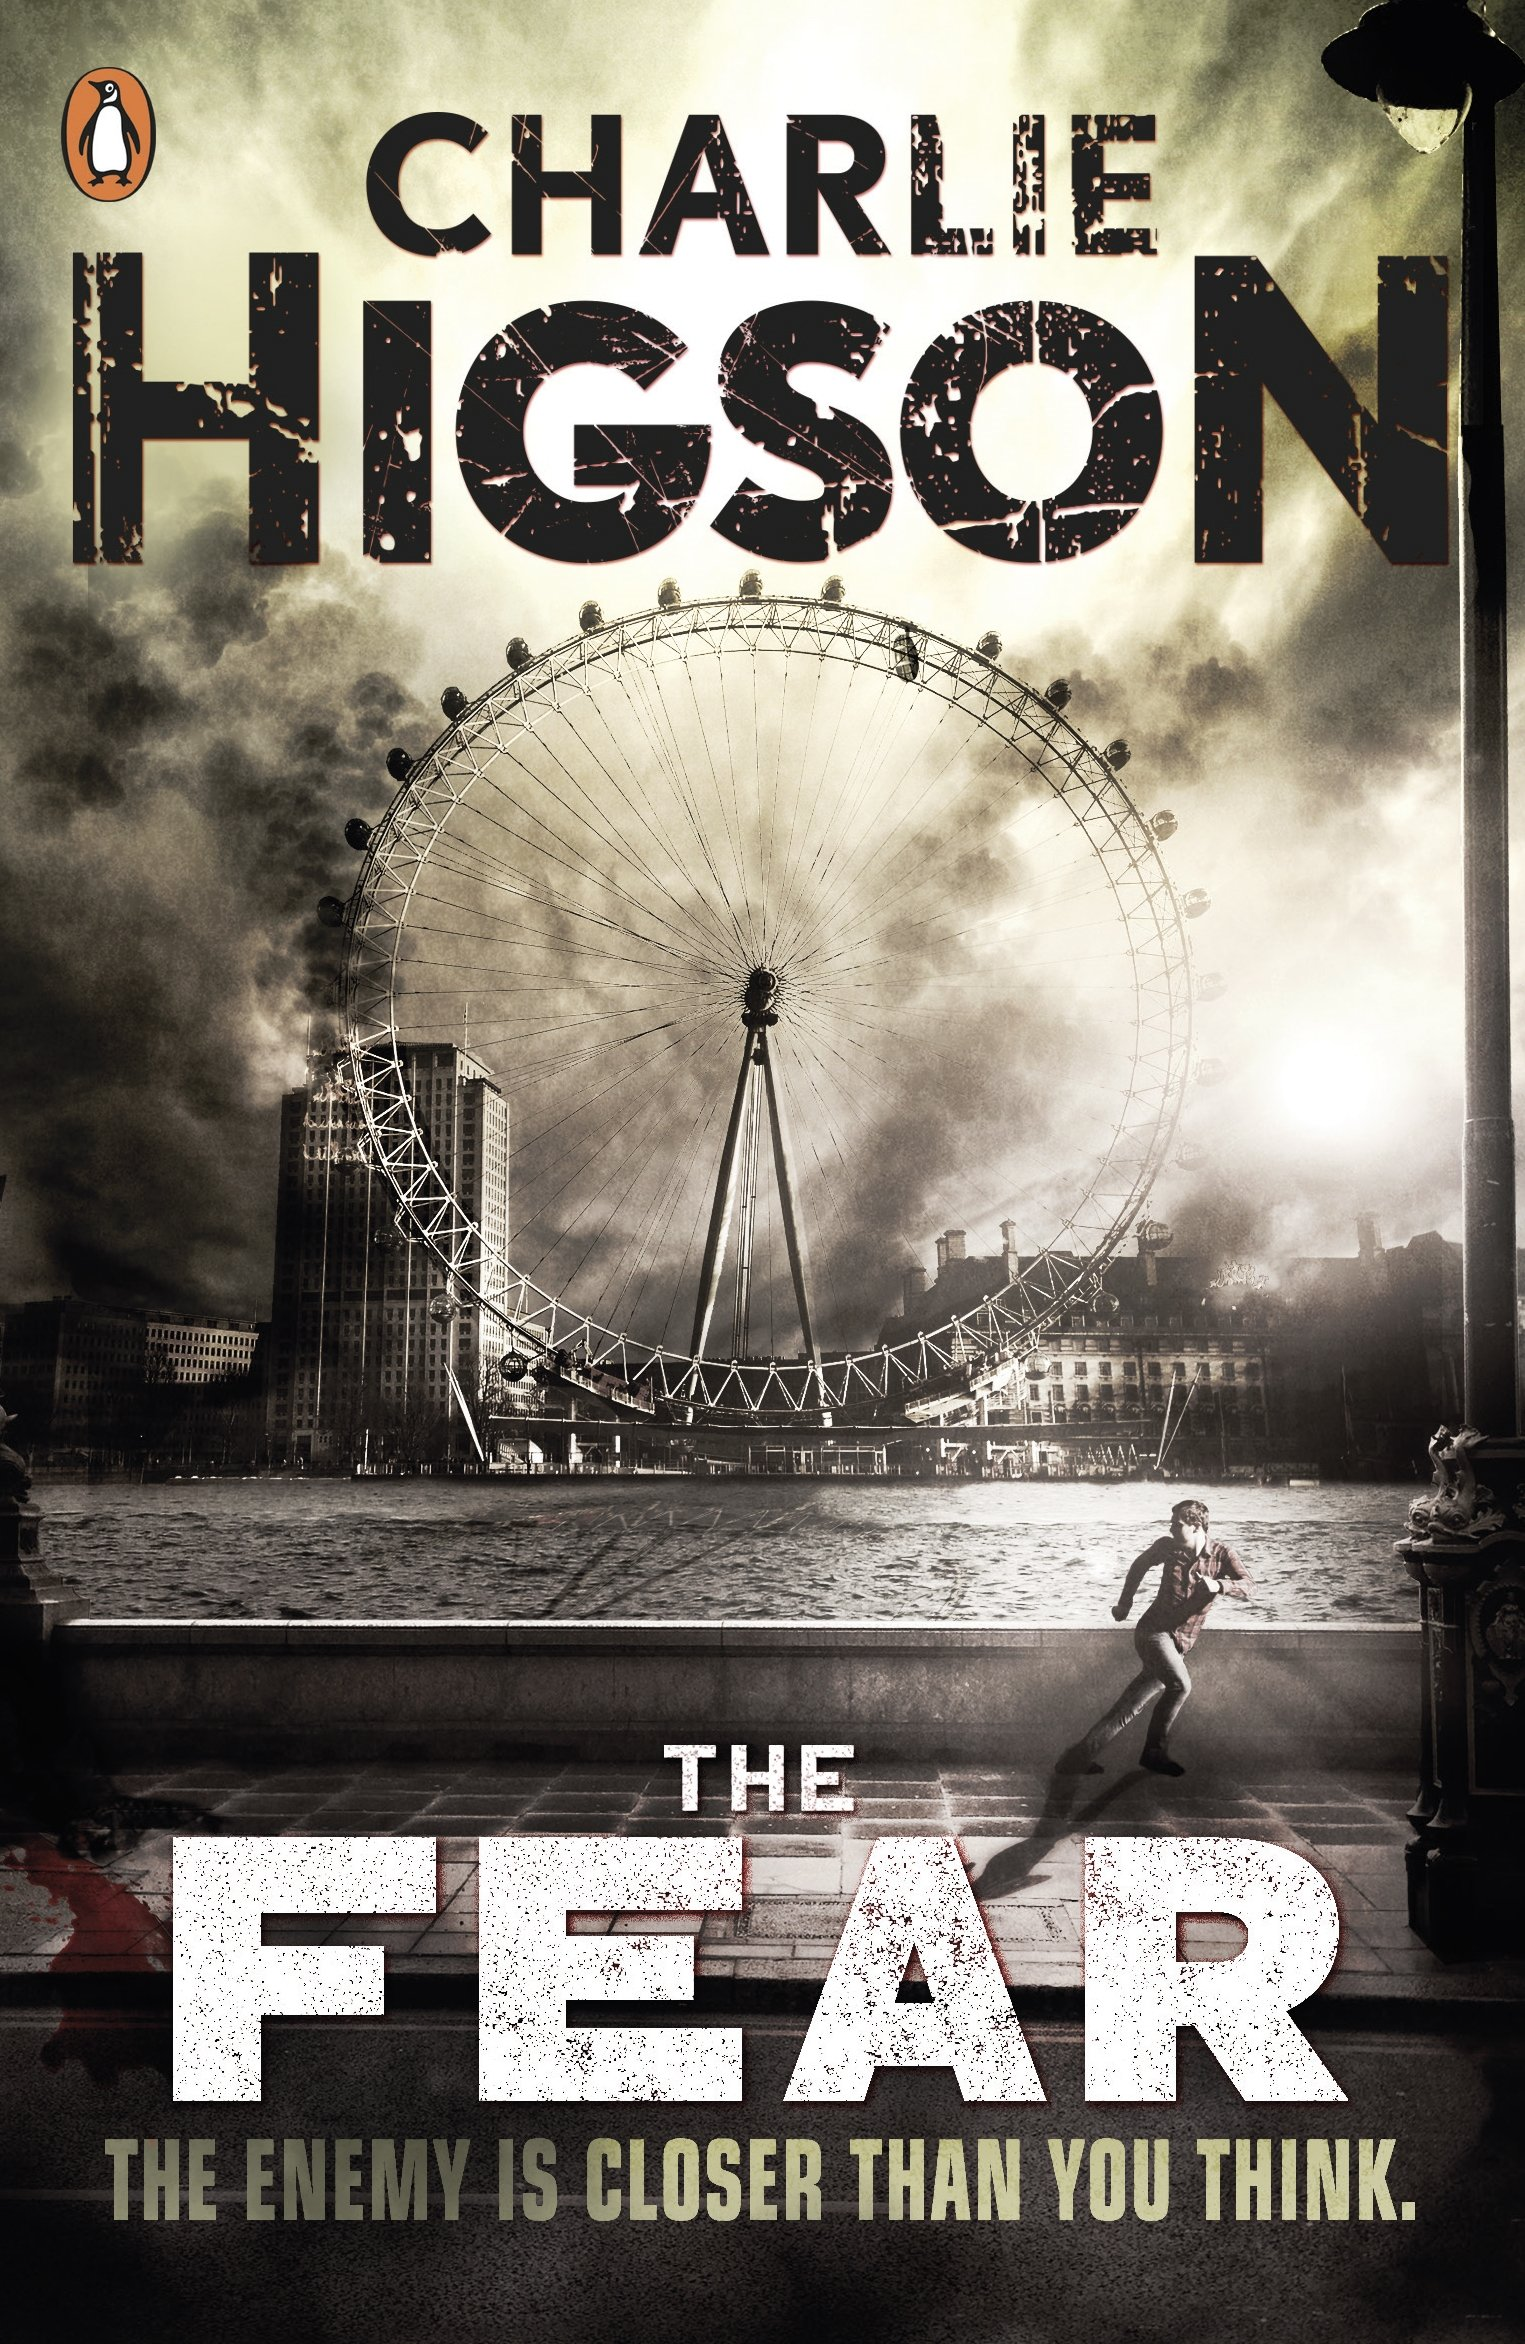 the fear the enemy book 3 co uk charlie higson the fear the enemy book 3 co uk charlie higson 9780141325064 books